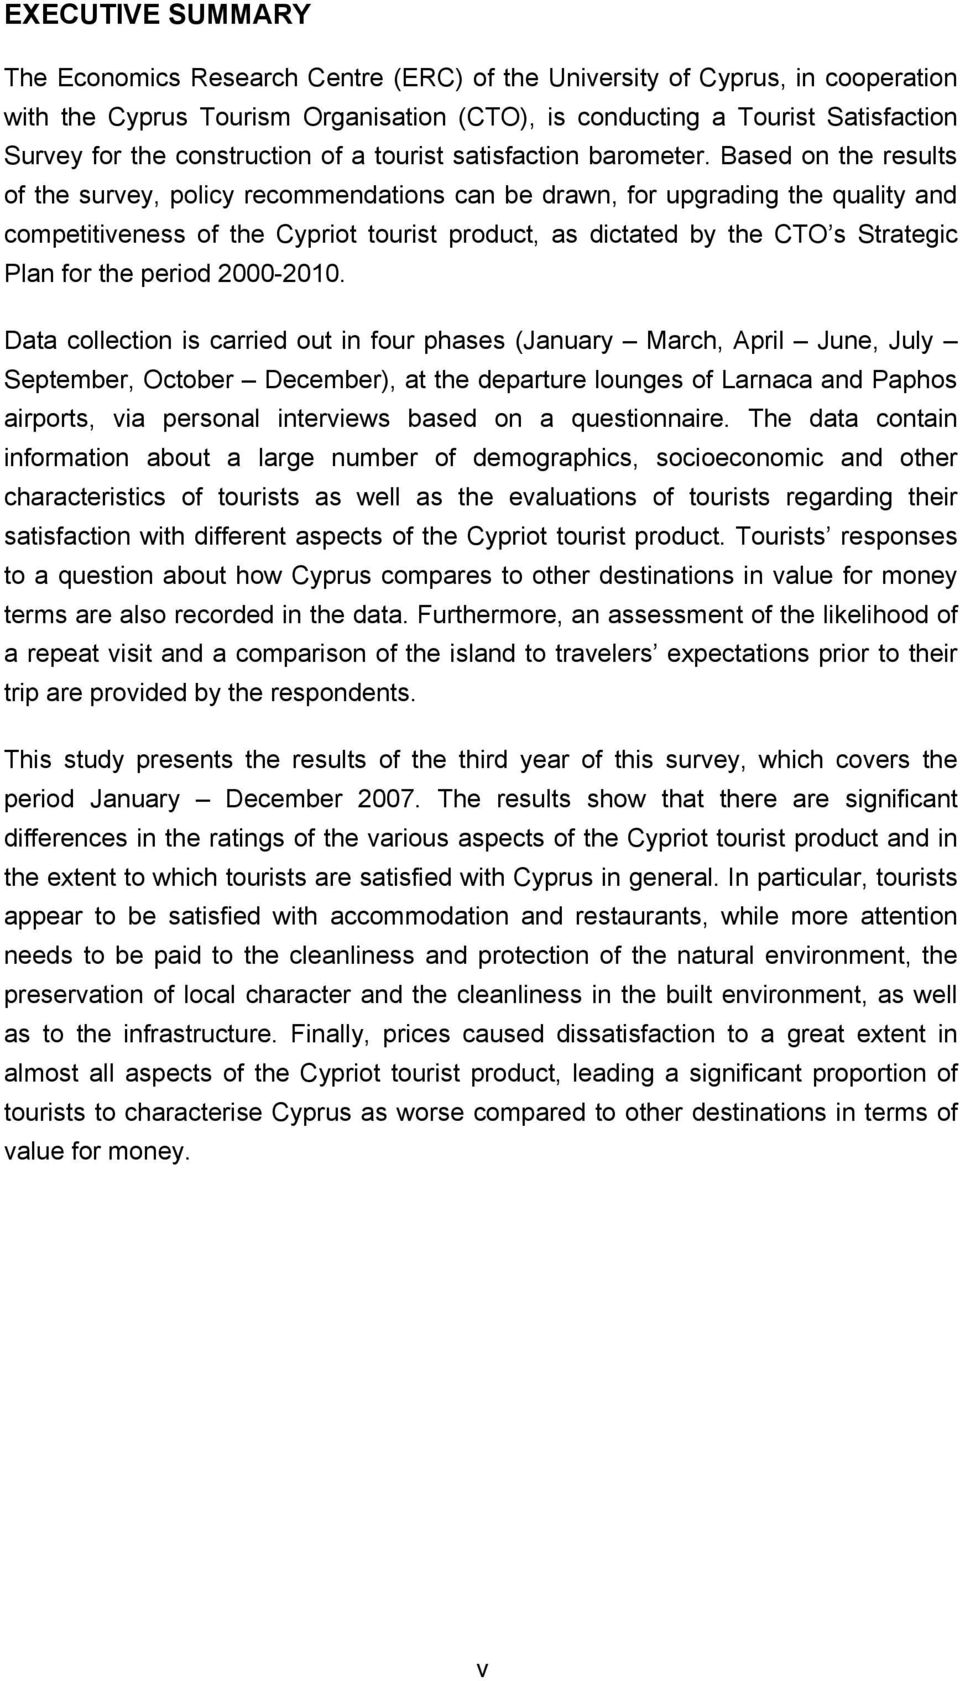 Based on the results of the survey, policy recommendations can be drawn, for upgrading the quality and competitiveness of the Cypriot tourist product, as dictated by the CTO s Strategic Plan for the